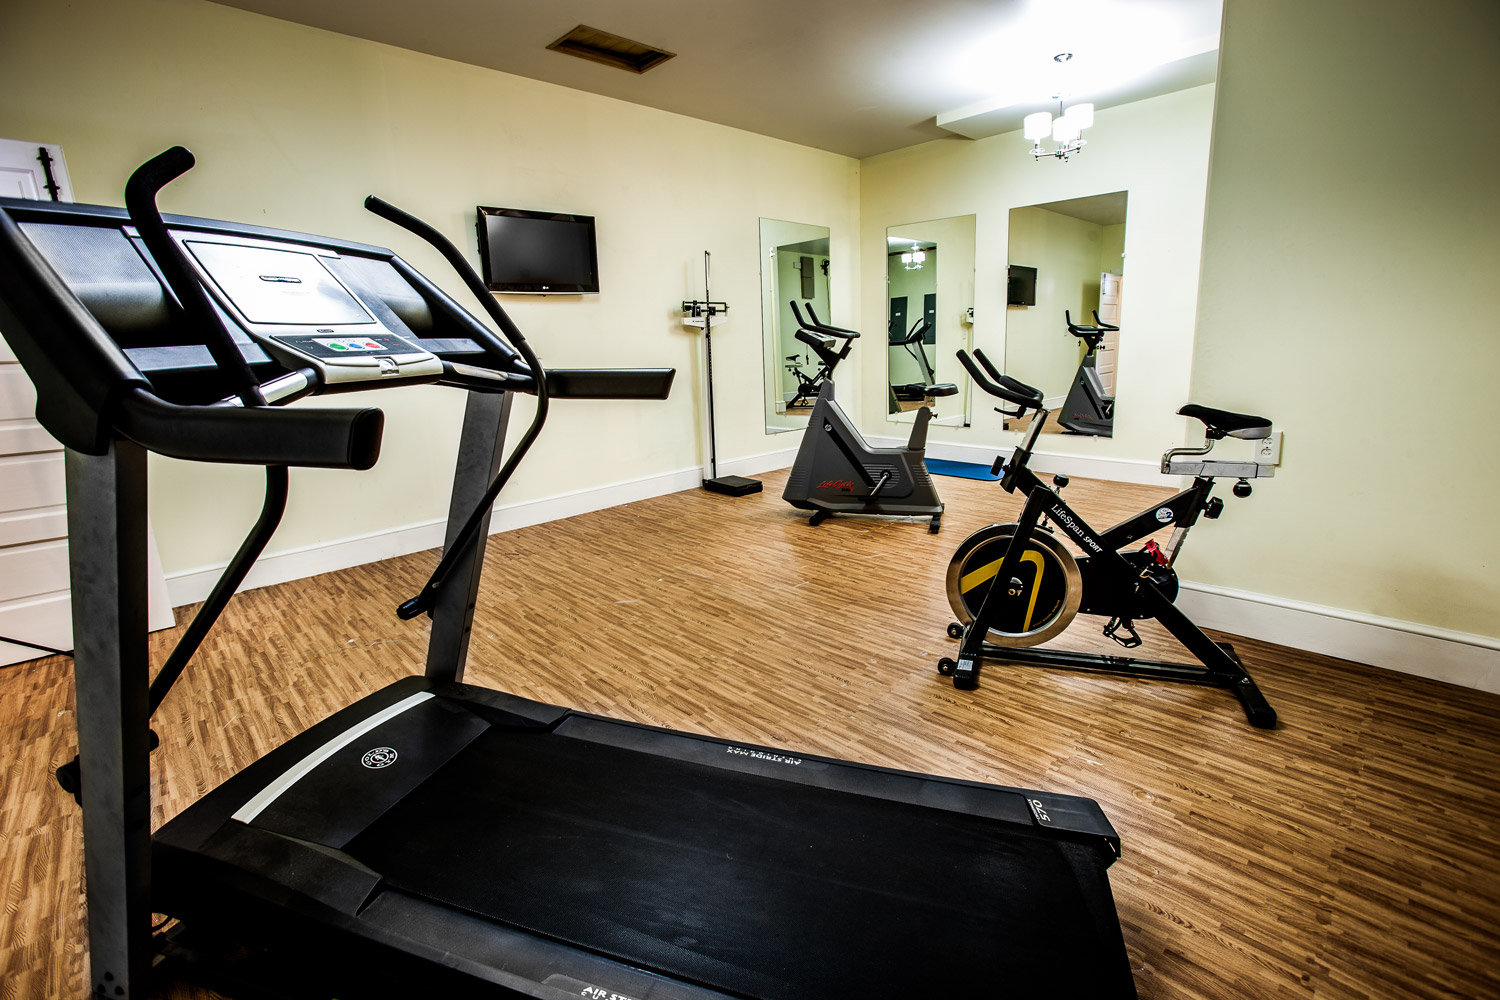 Workout room with a treadmill and two ellipticals.